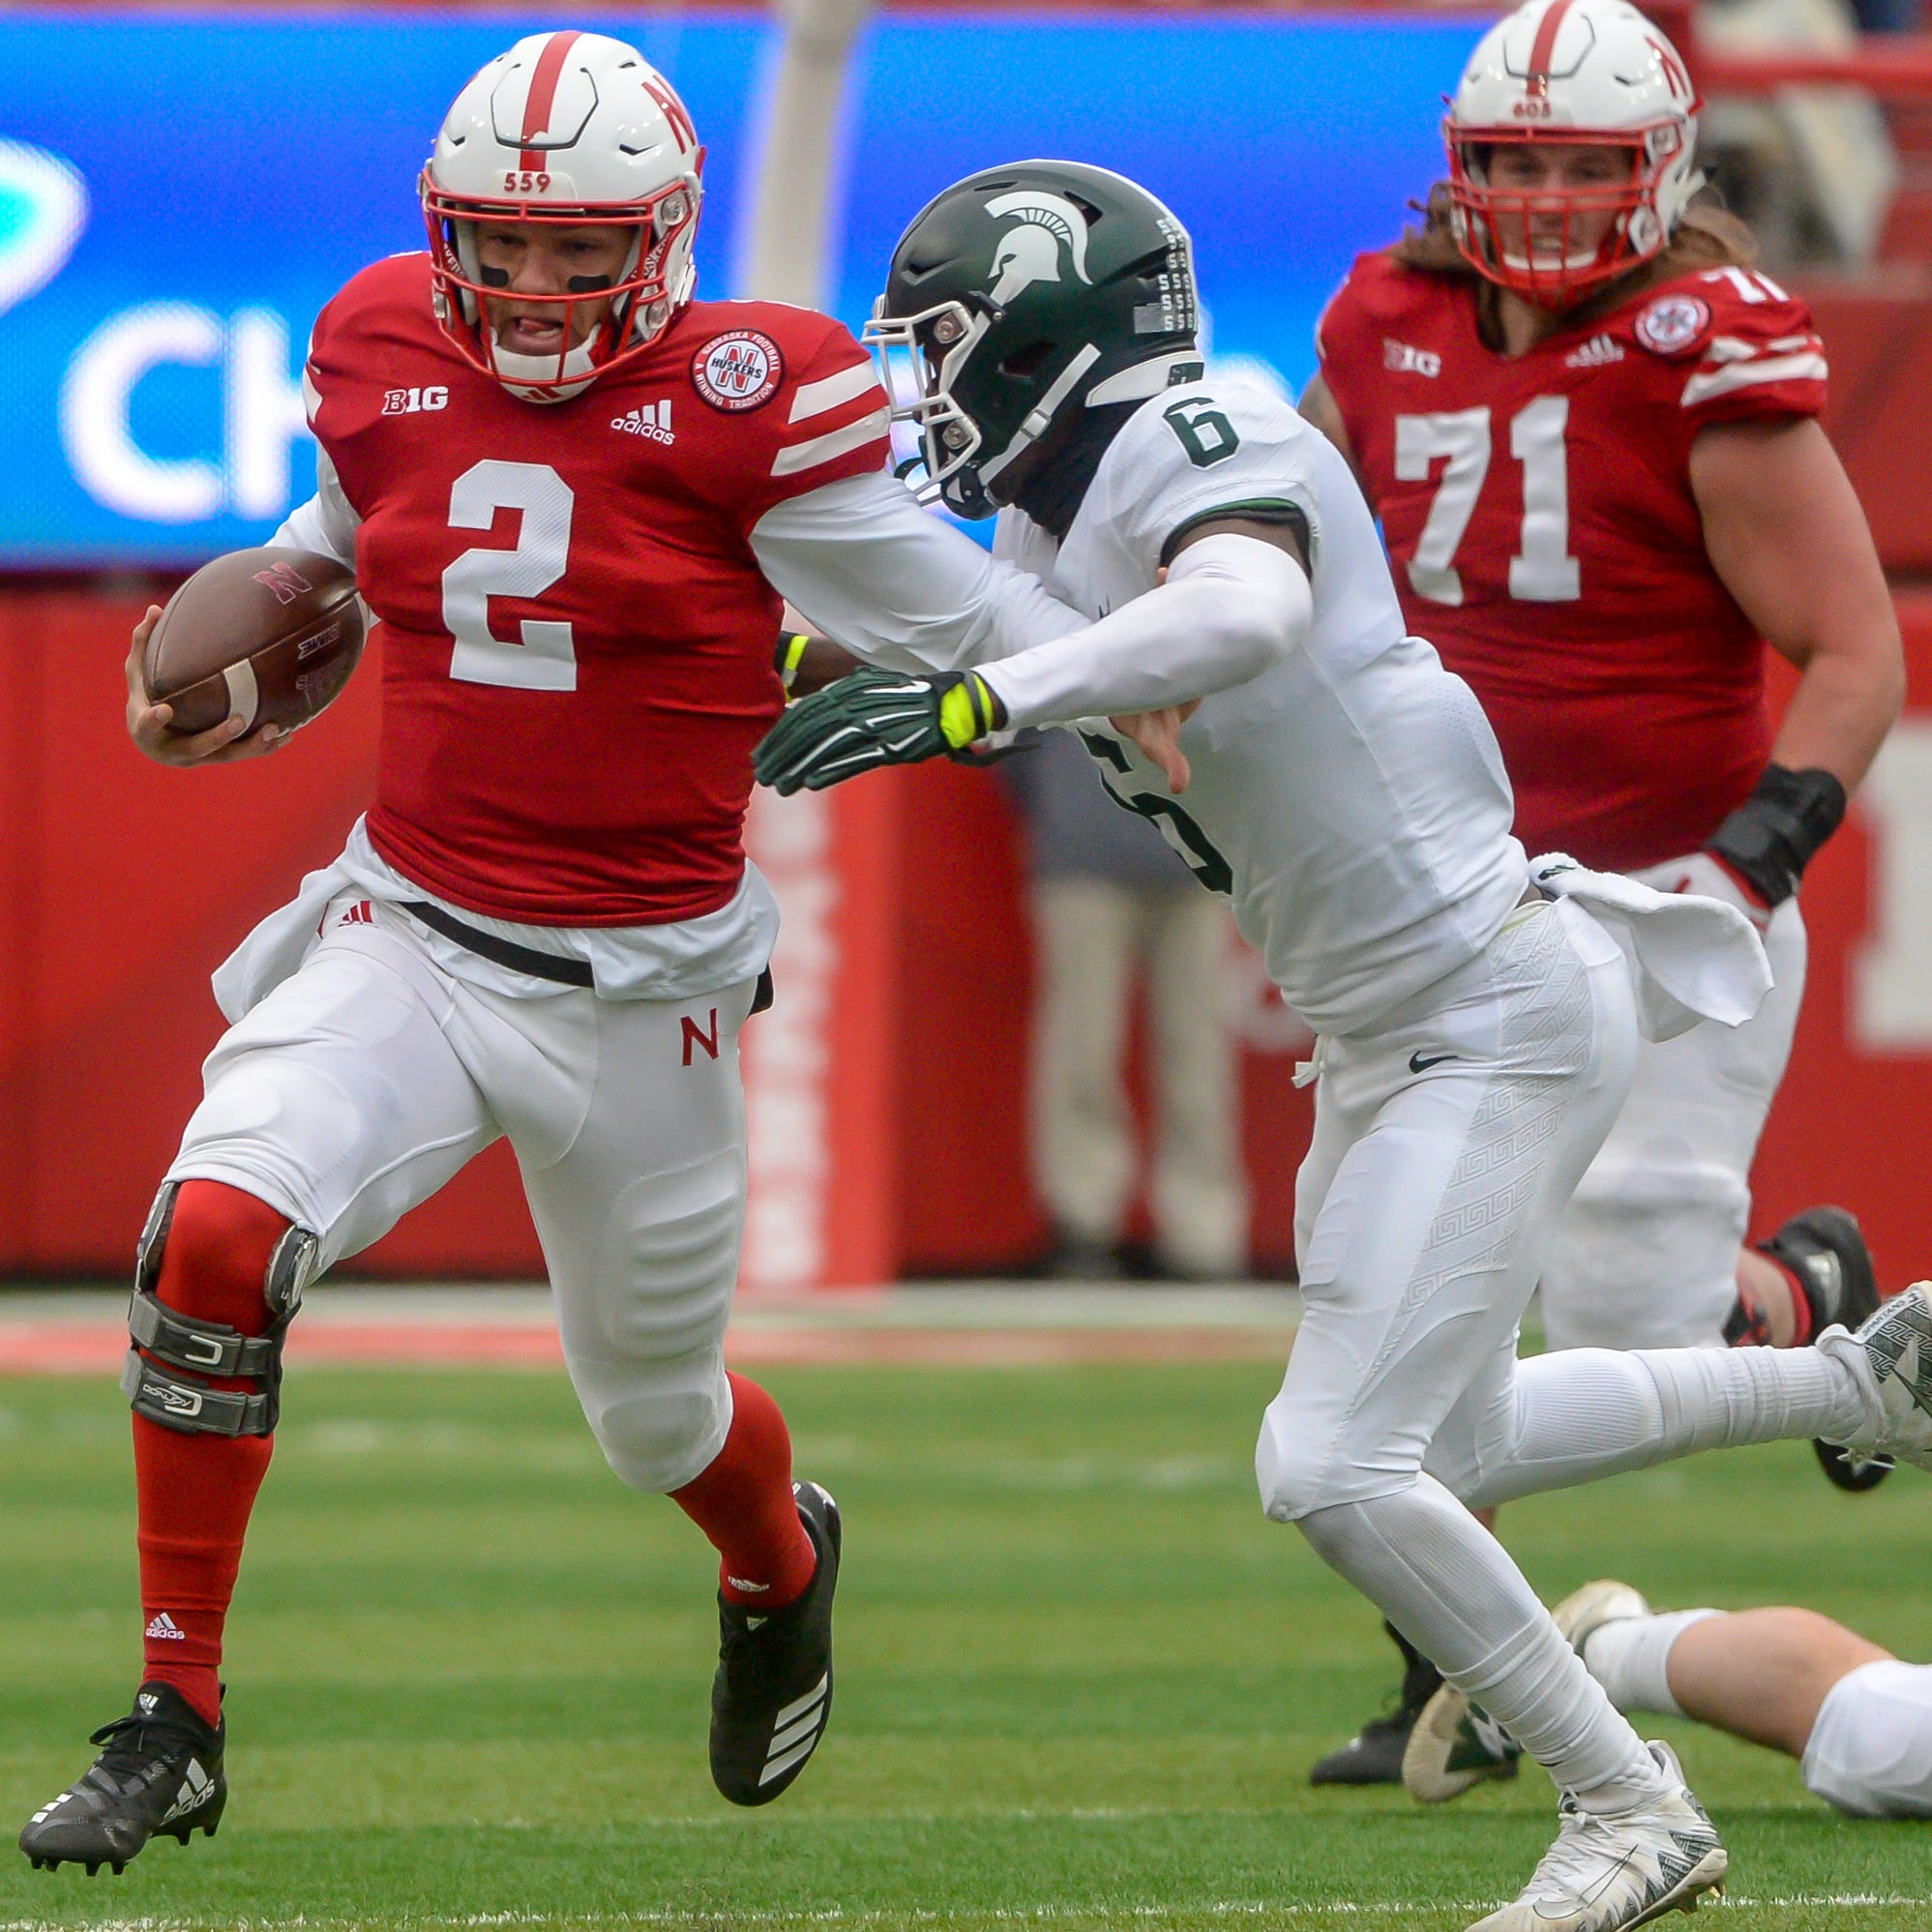 Michigan State football offense goes cold in 9-6 loss at Nebraska